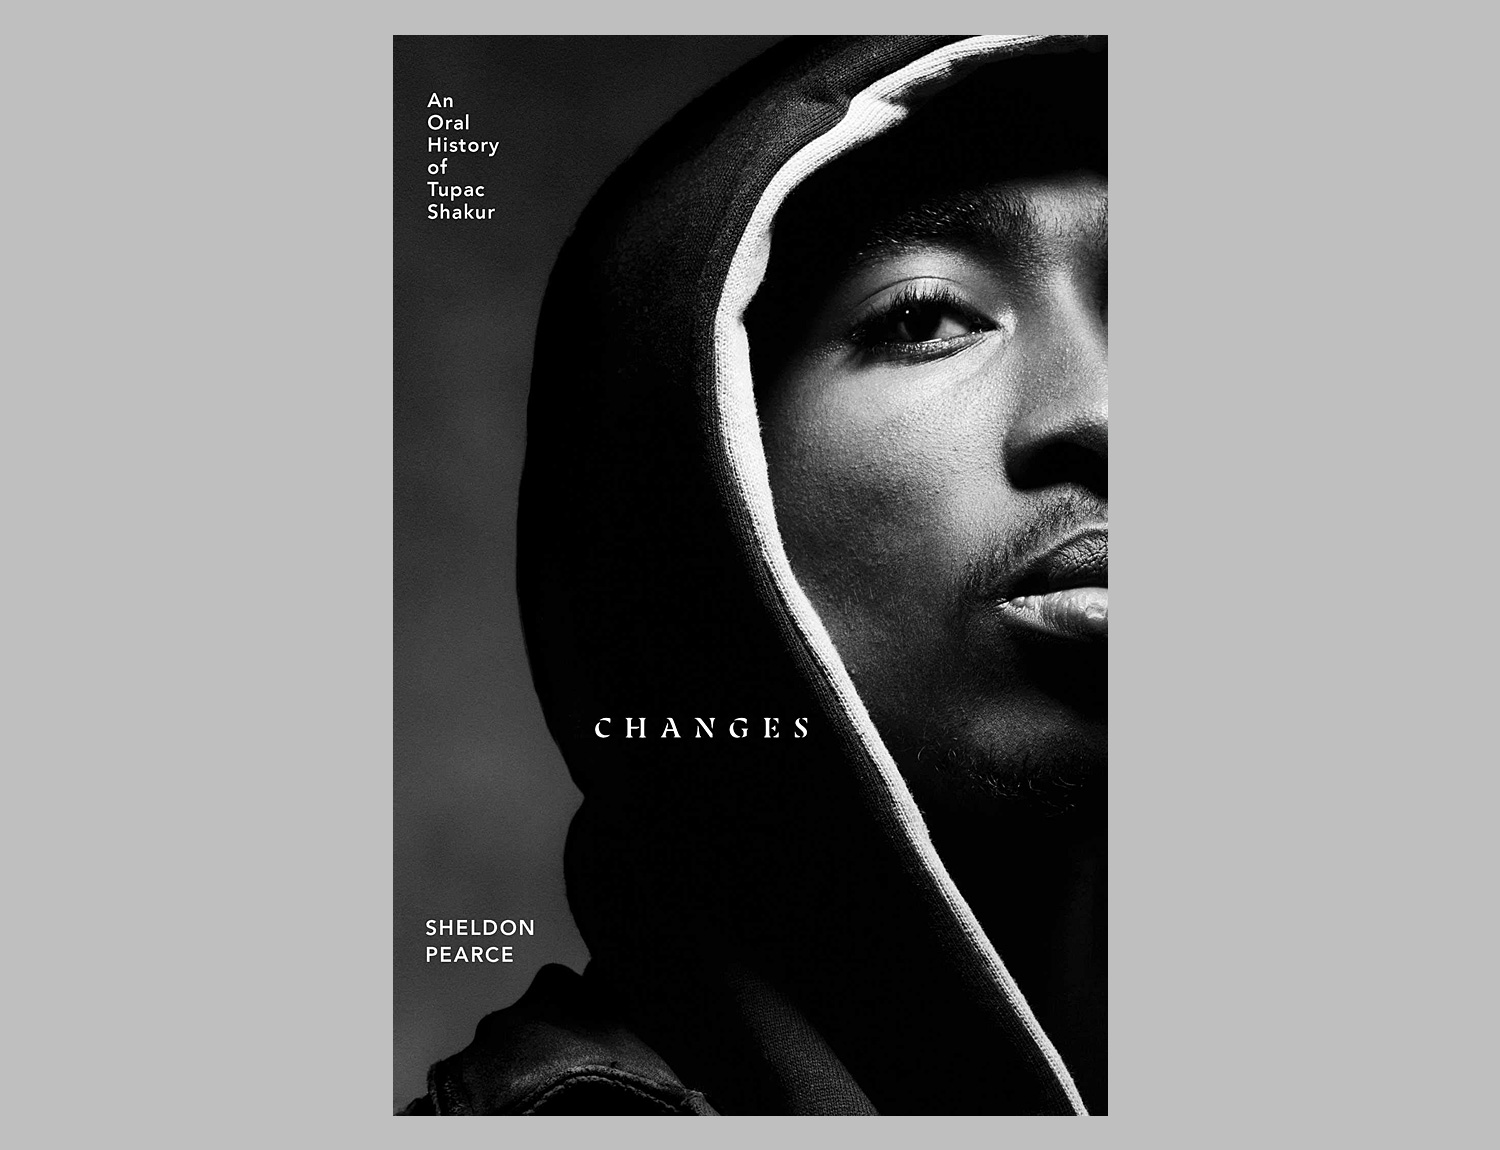 Changes: An Oral History of Tupac Shakur at werd.com